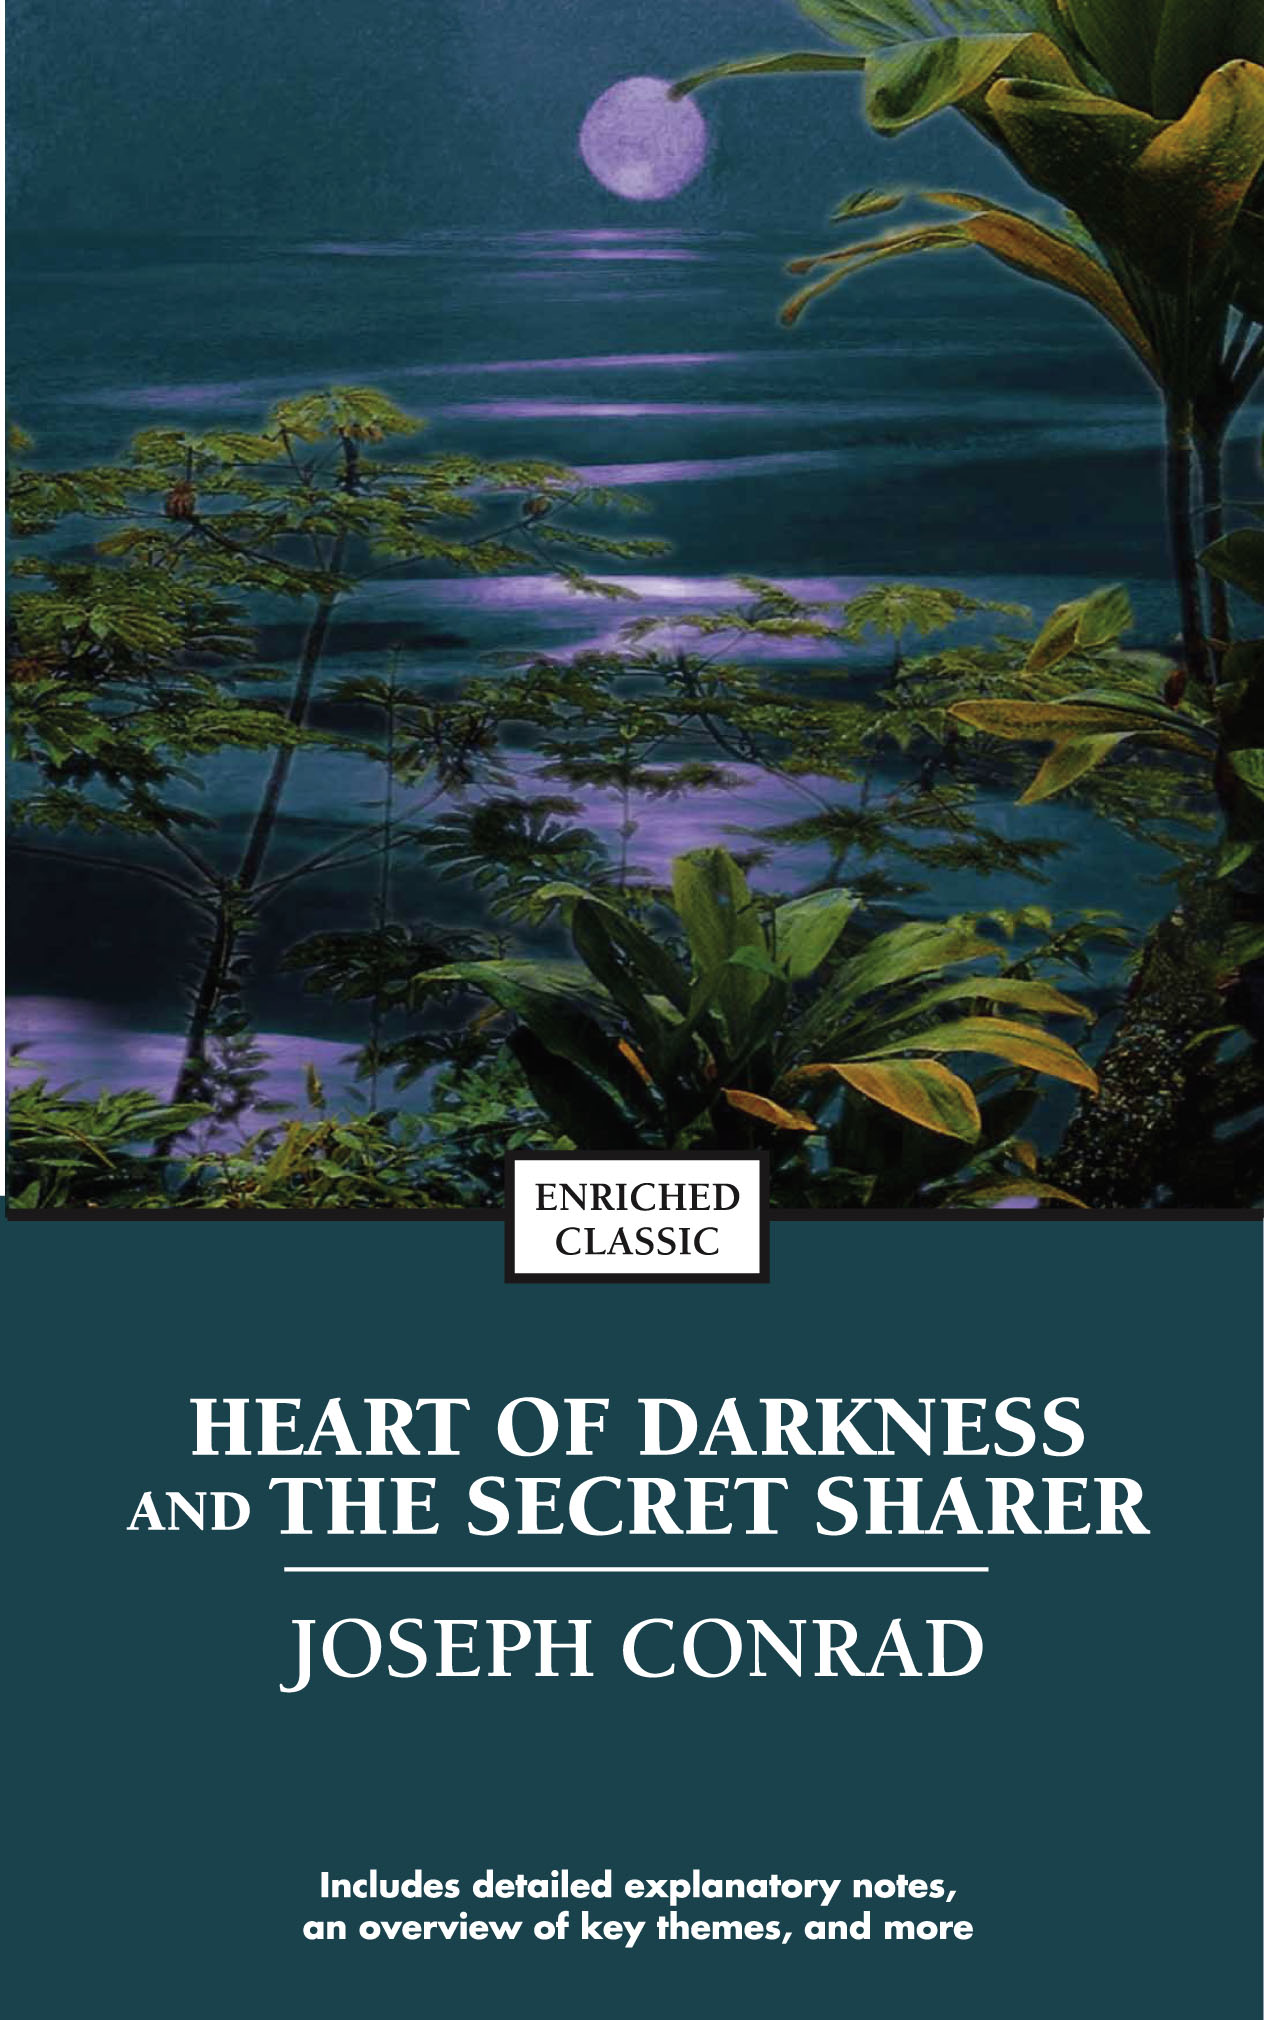 Themes in Heart of Darkness